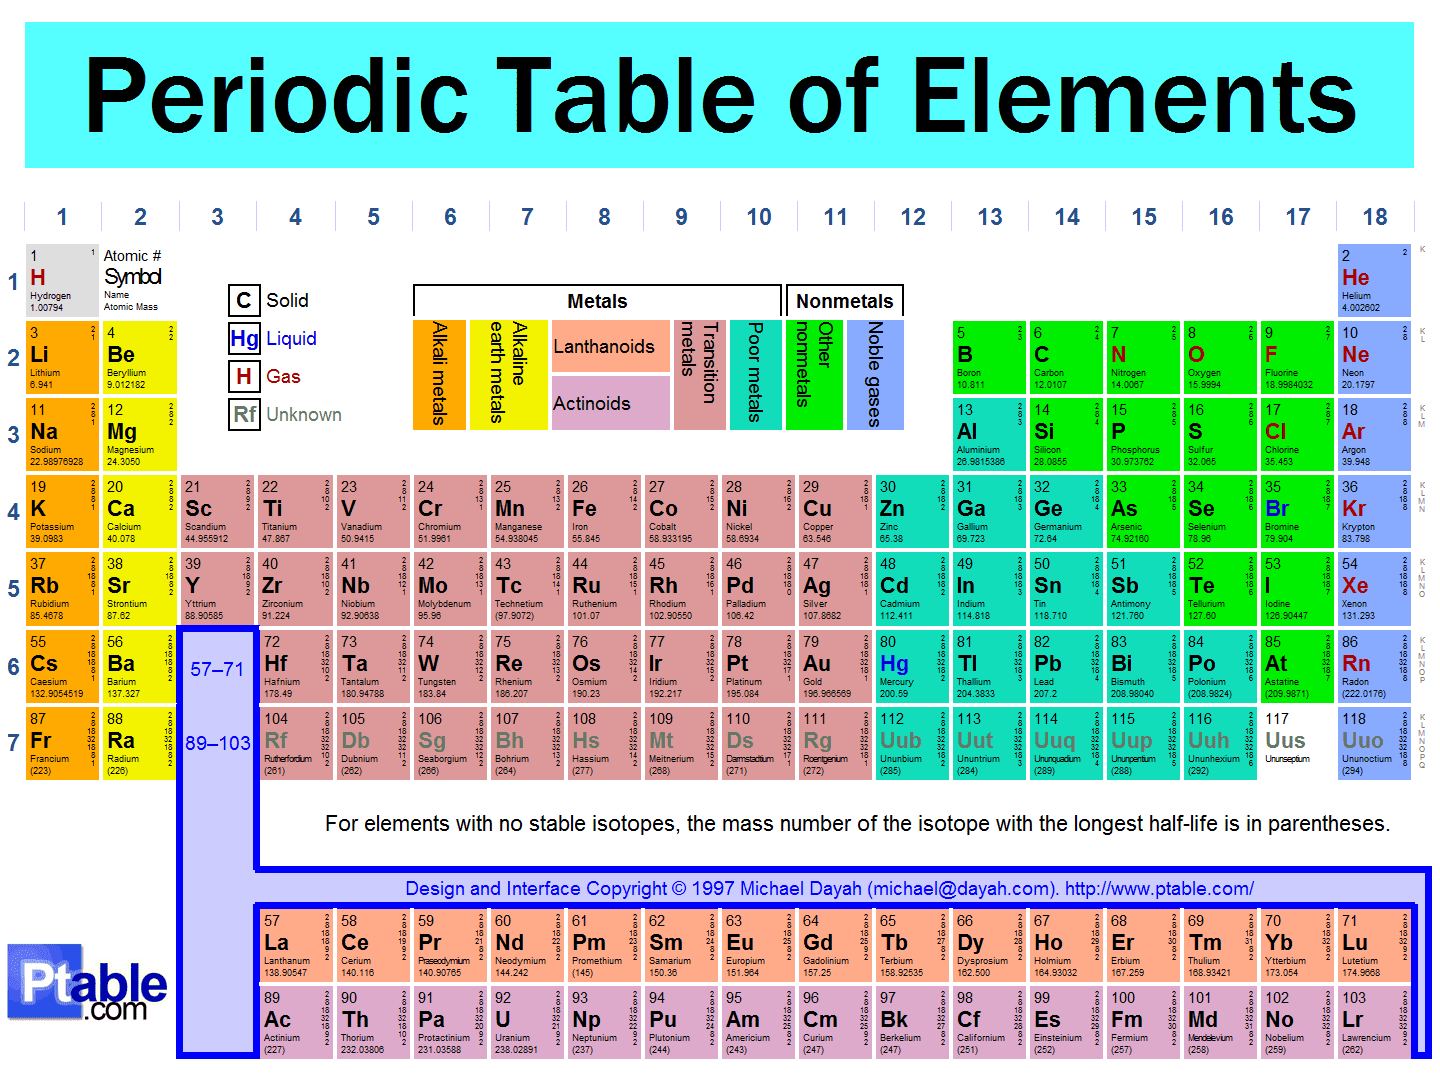 Are Most Elements Solid At Room Temperature